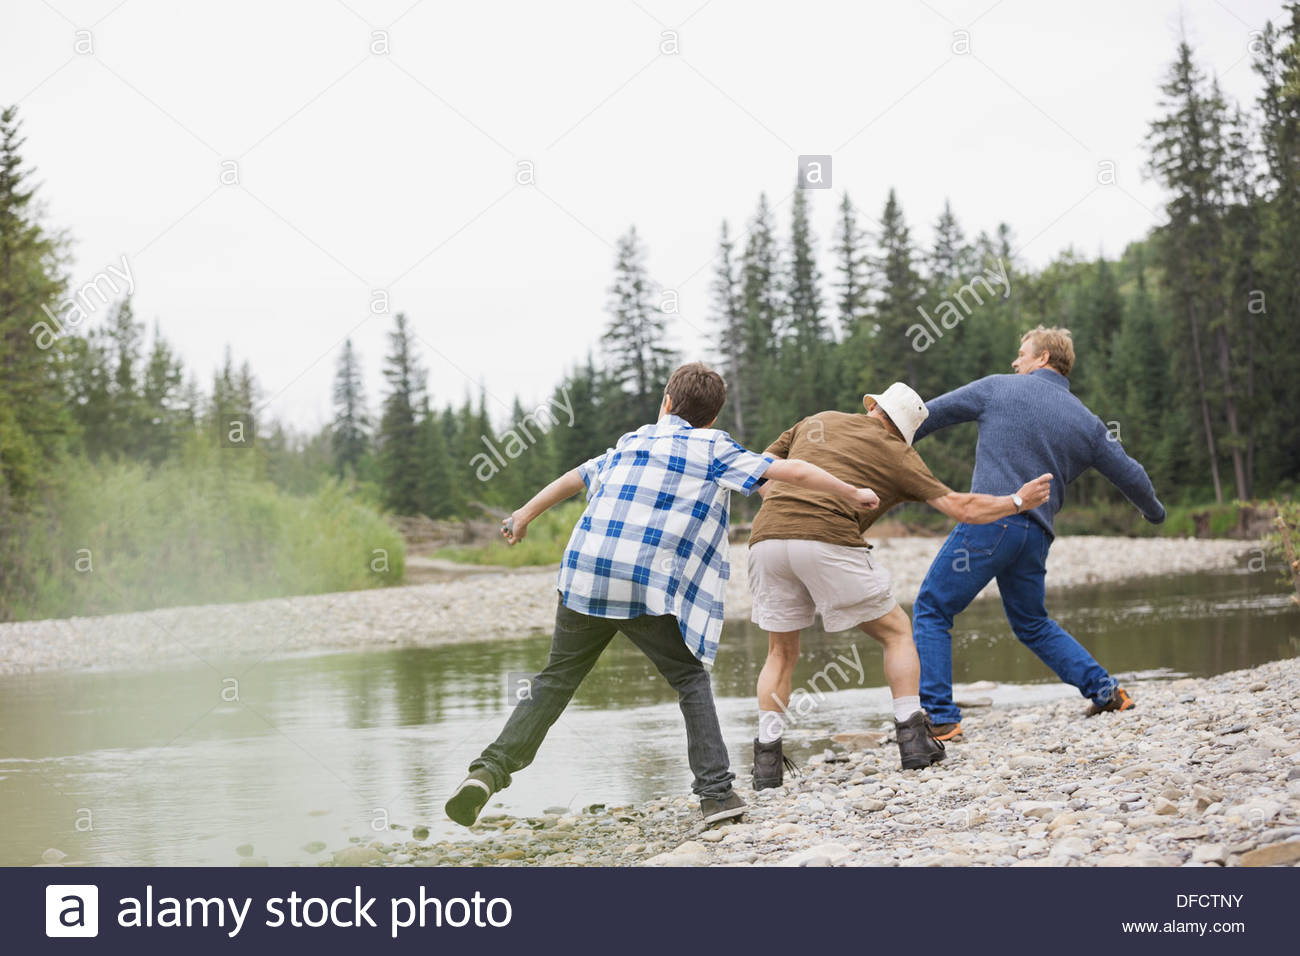 Male family members skipping rocks on a river - Stock Image